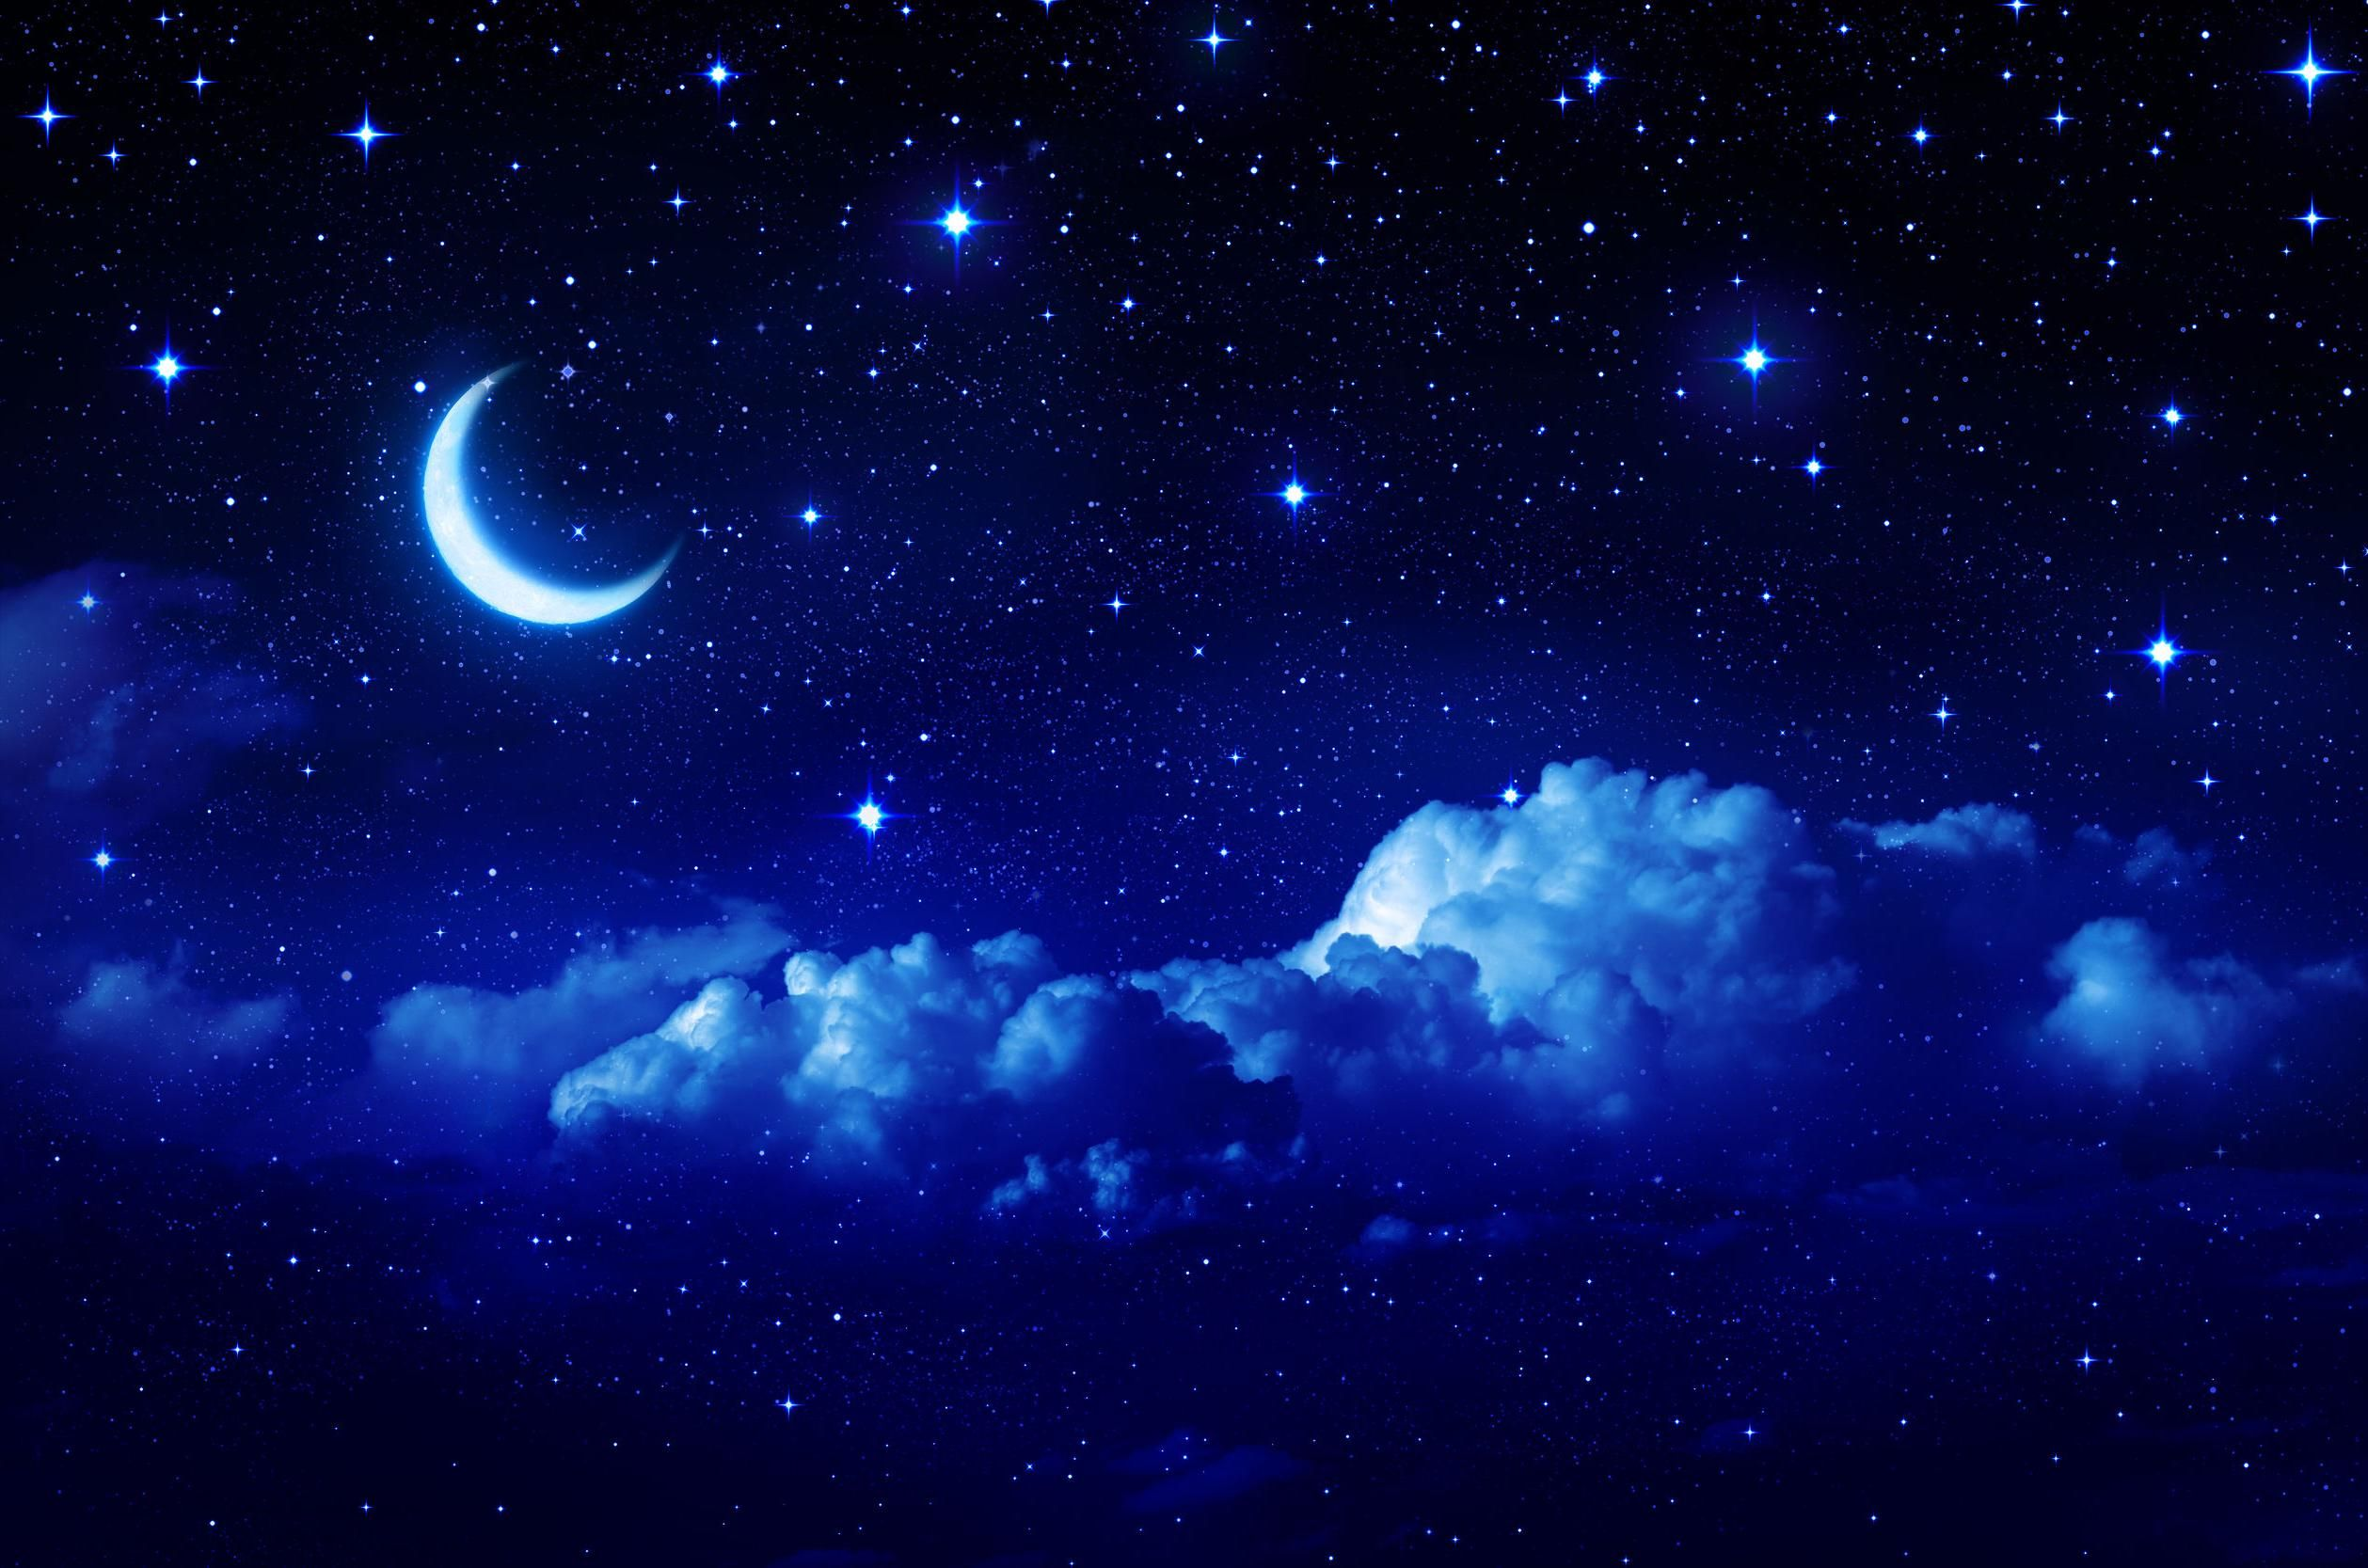 Blue Night Sky Wallpaper Free Download Night Sky Wallpaper Night Sky Photography Night Skies